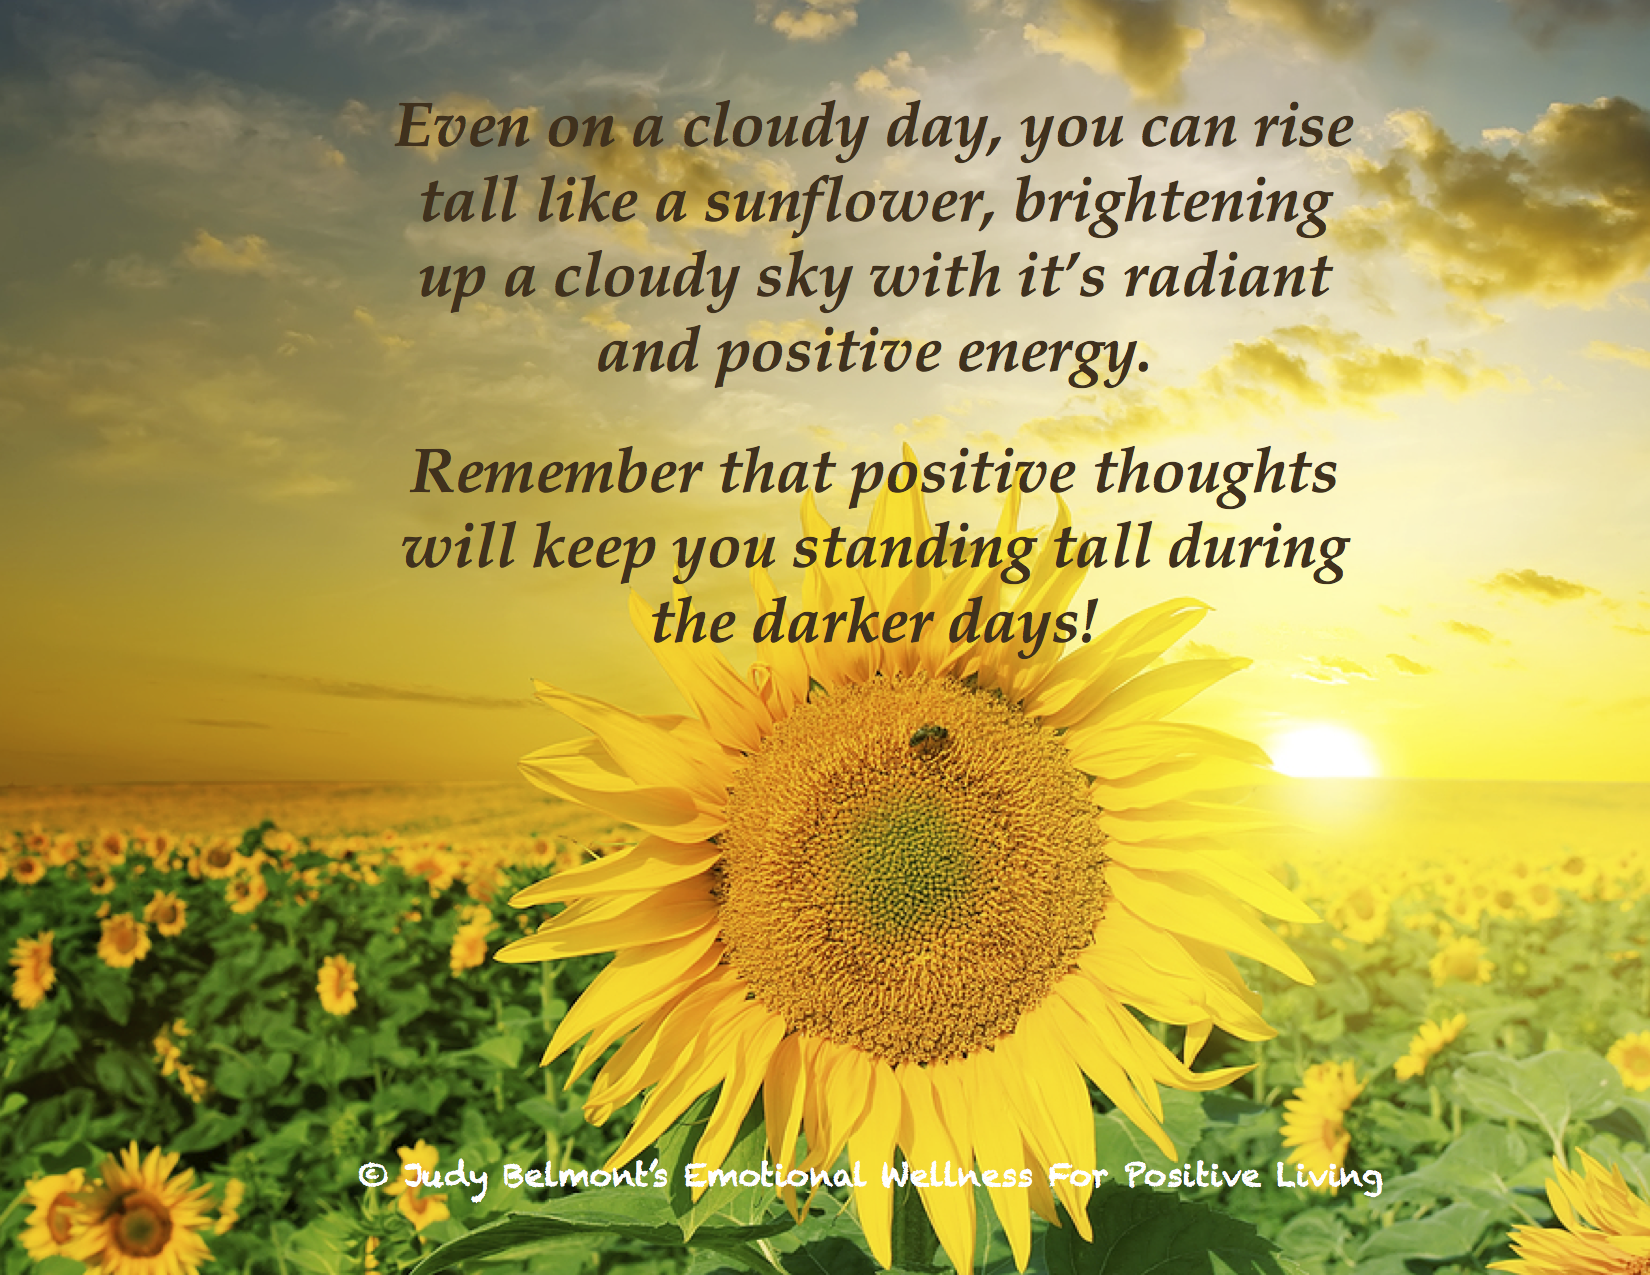 Think Sunny Thoughts On A Cloudy Day! For More Daily